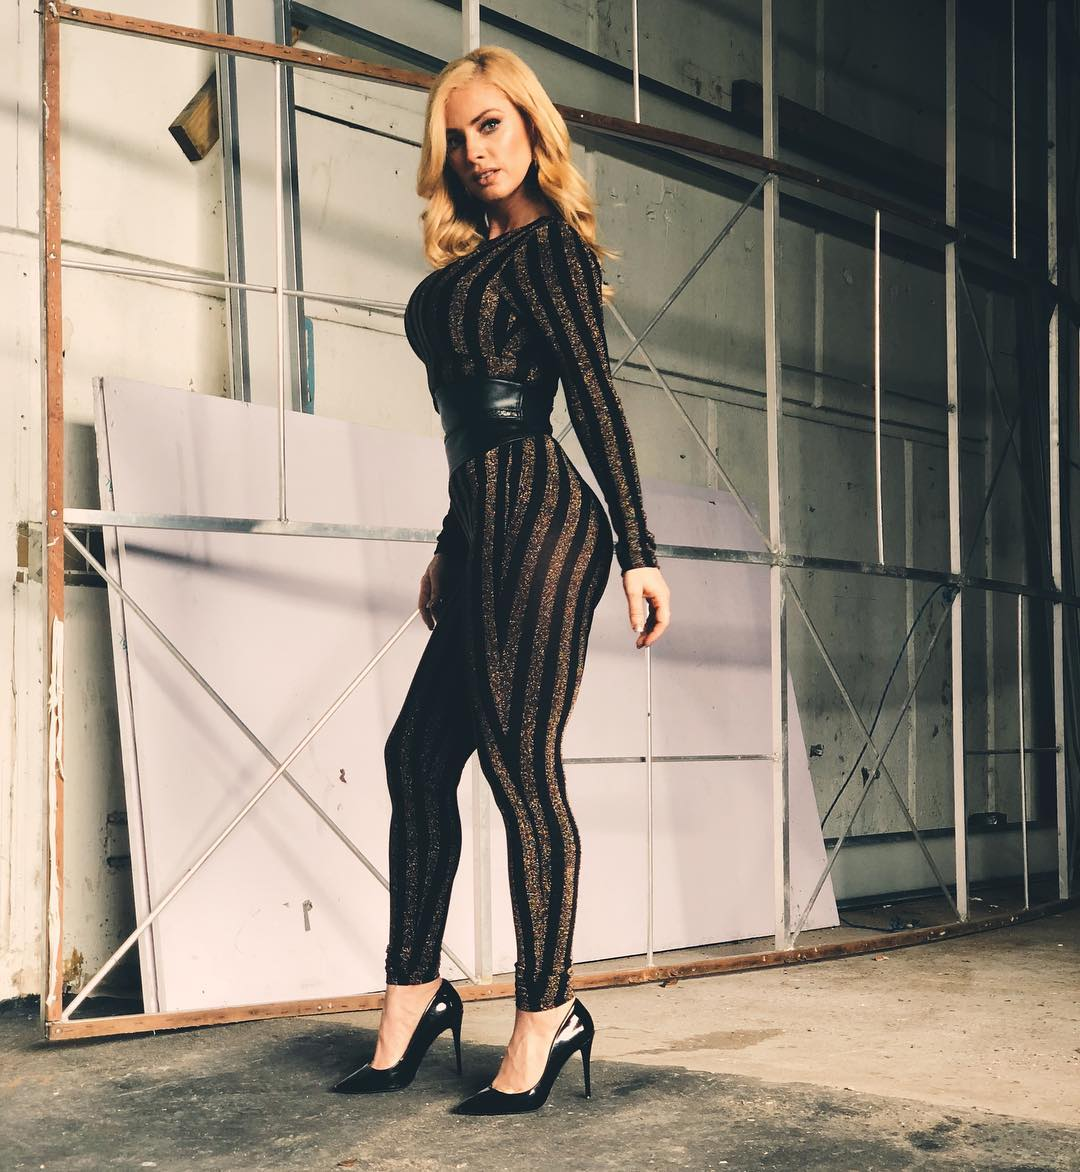 OOTD: Natalia Rivera In Striped Tight Jumpsuit 2020